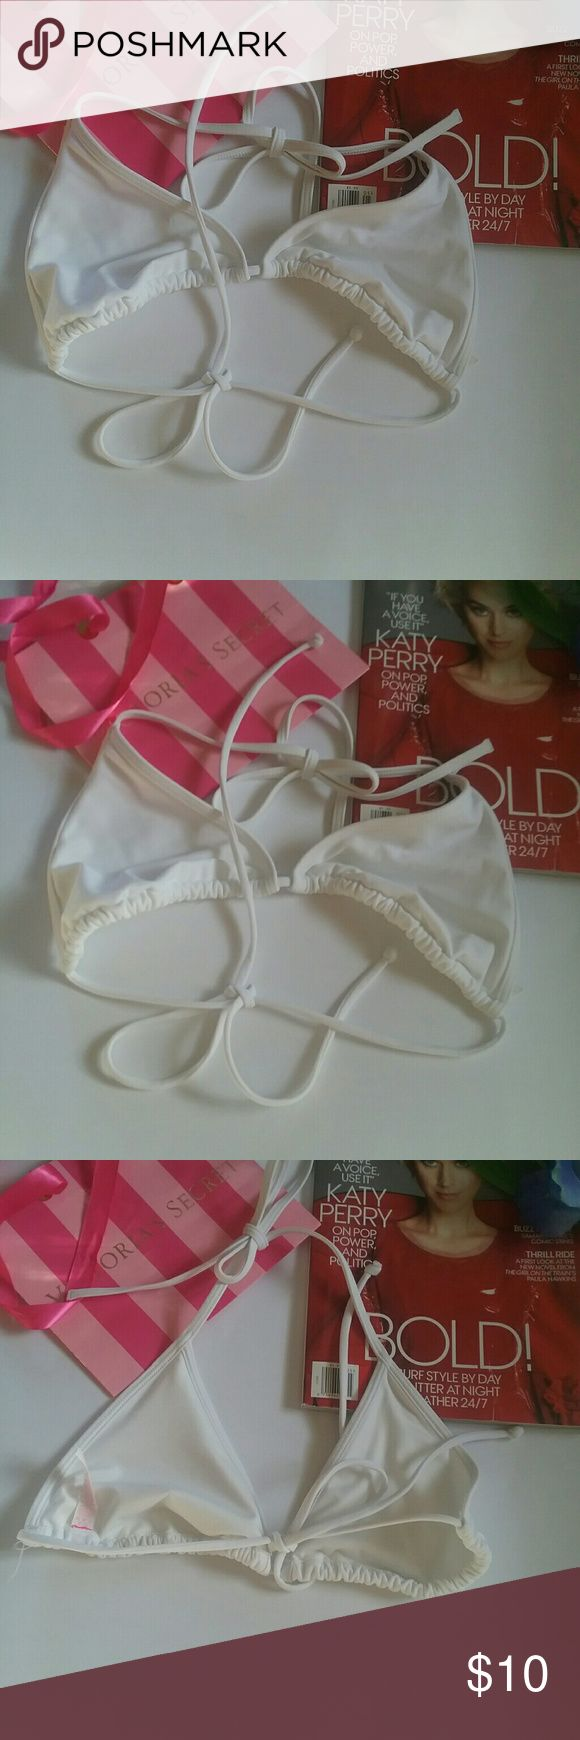 New Victorias Secret Triangle bikini Top Mef This is a new Victoria's Secret white triangle bikini top. It is size medium. IT IS NOT PADDED. It is a Victoria's Secret's Overstock so this size tag remains but the store Tags have been removed. Victorias Secret  Swim Bikinis